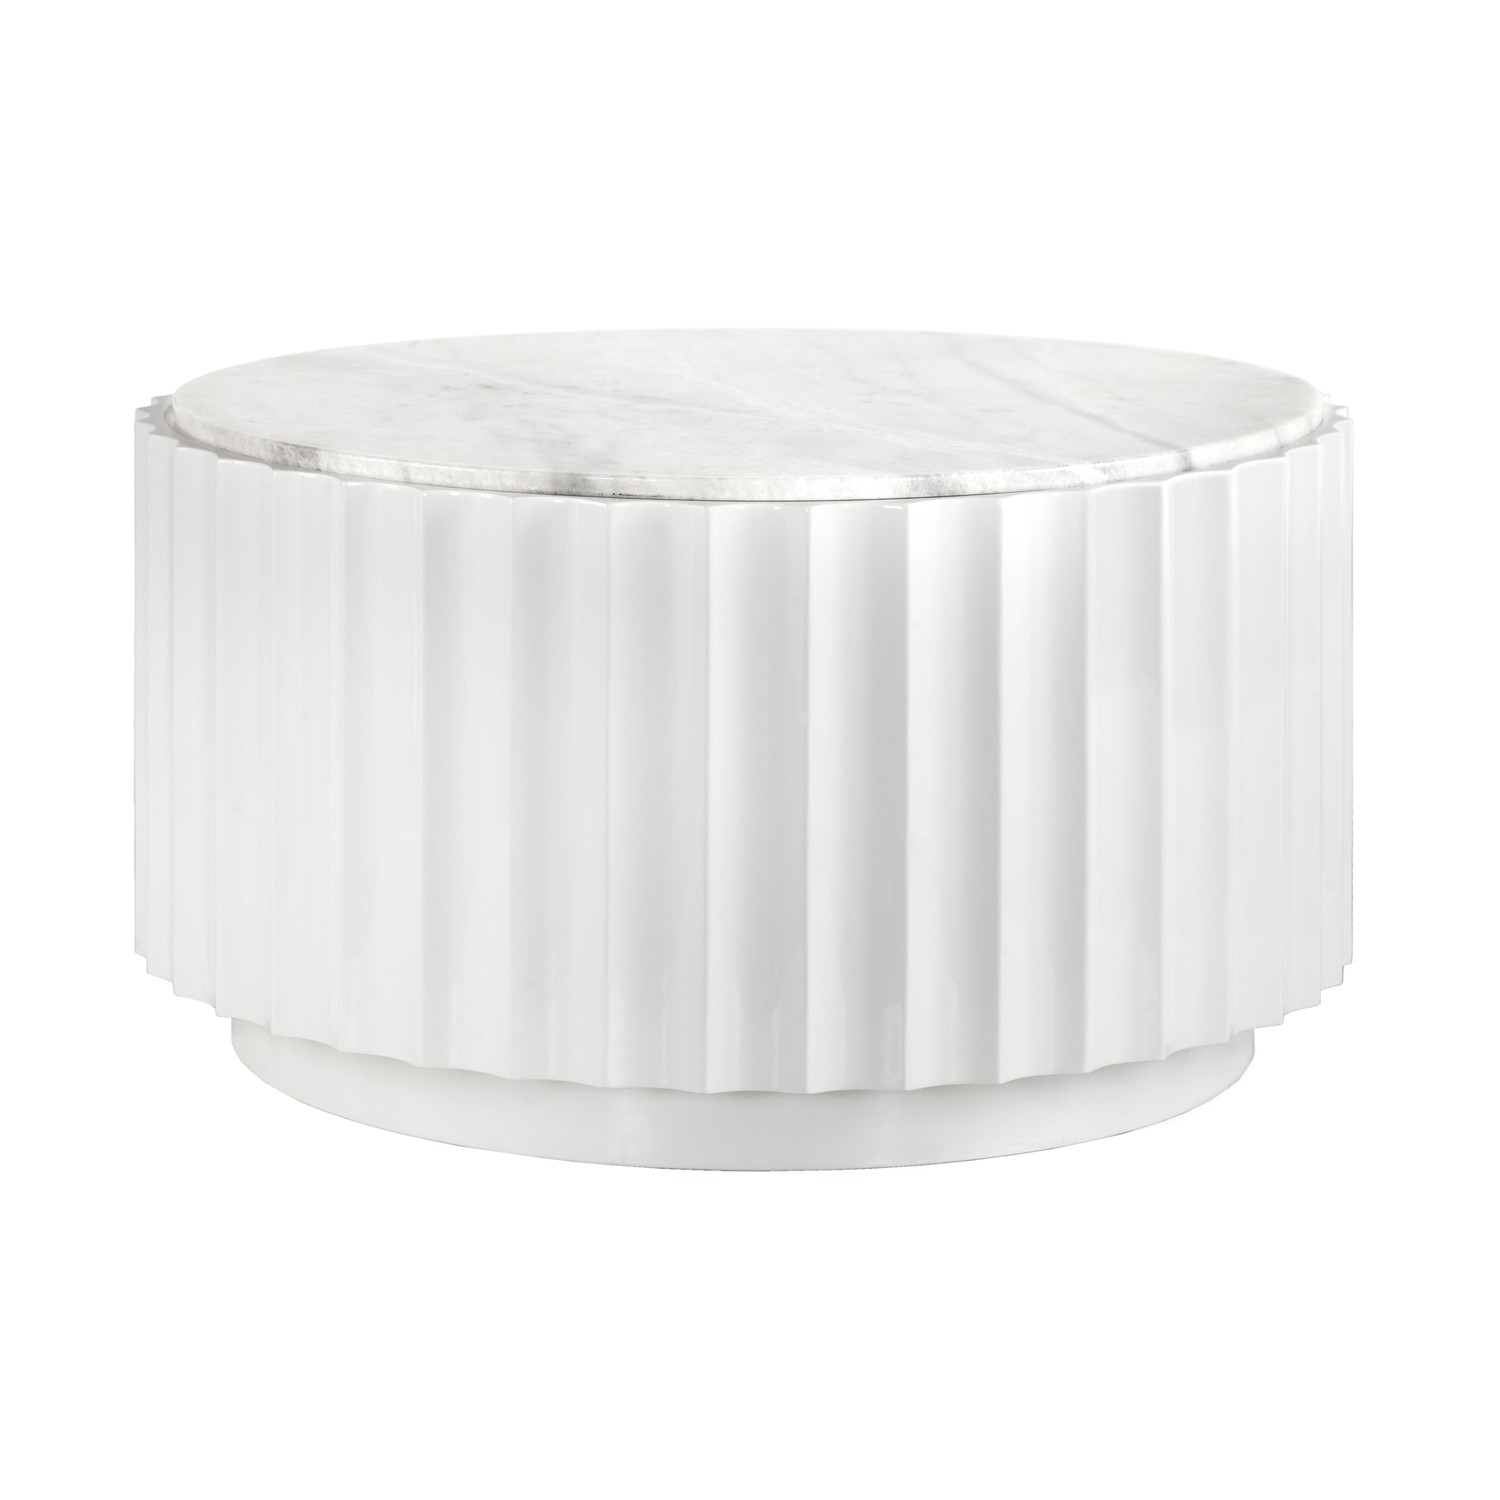 Clove White Round Coffee Table With White Marble Top Innovative